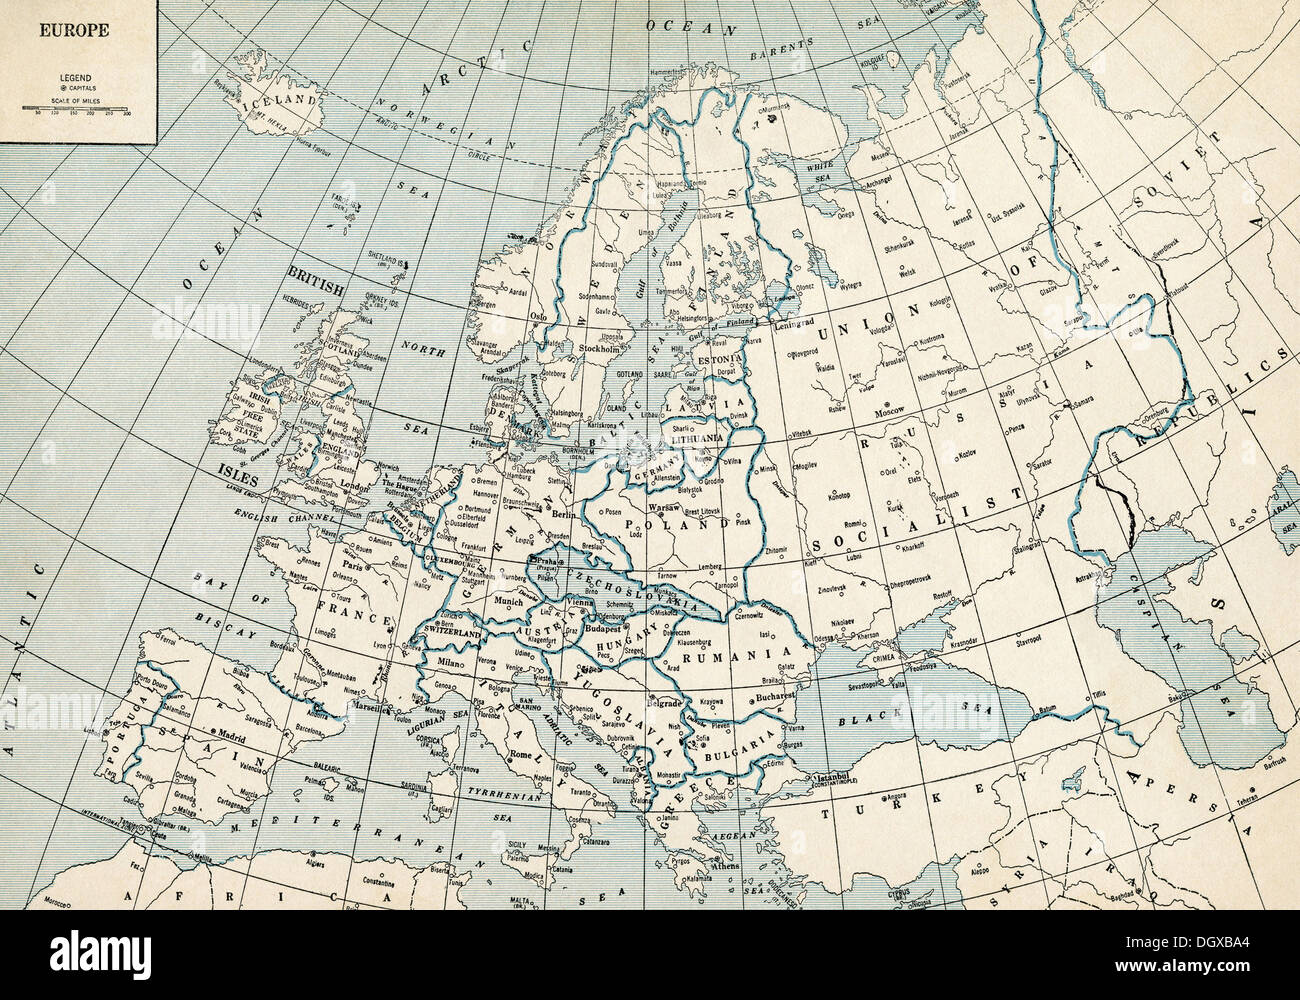 Old Map Of Europe 1930 S Stock Photo 62045260 Alamy